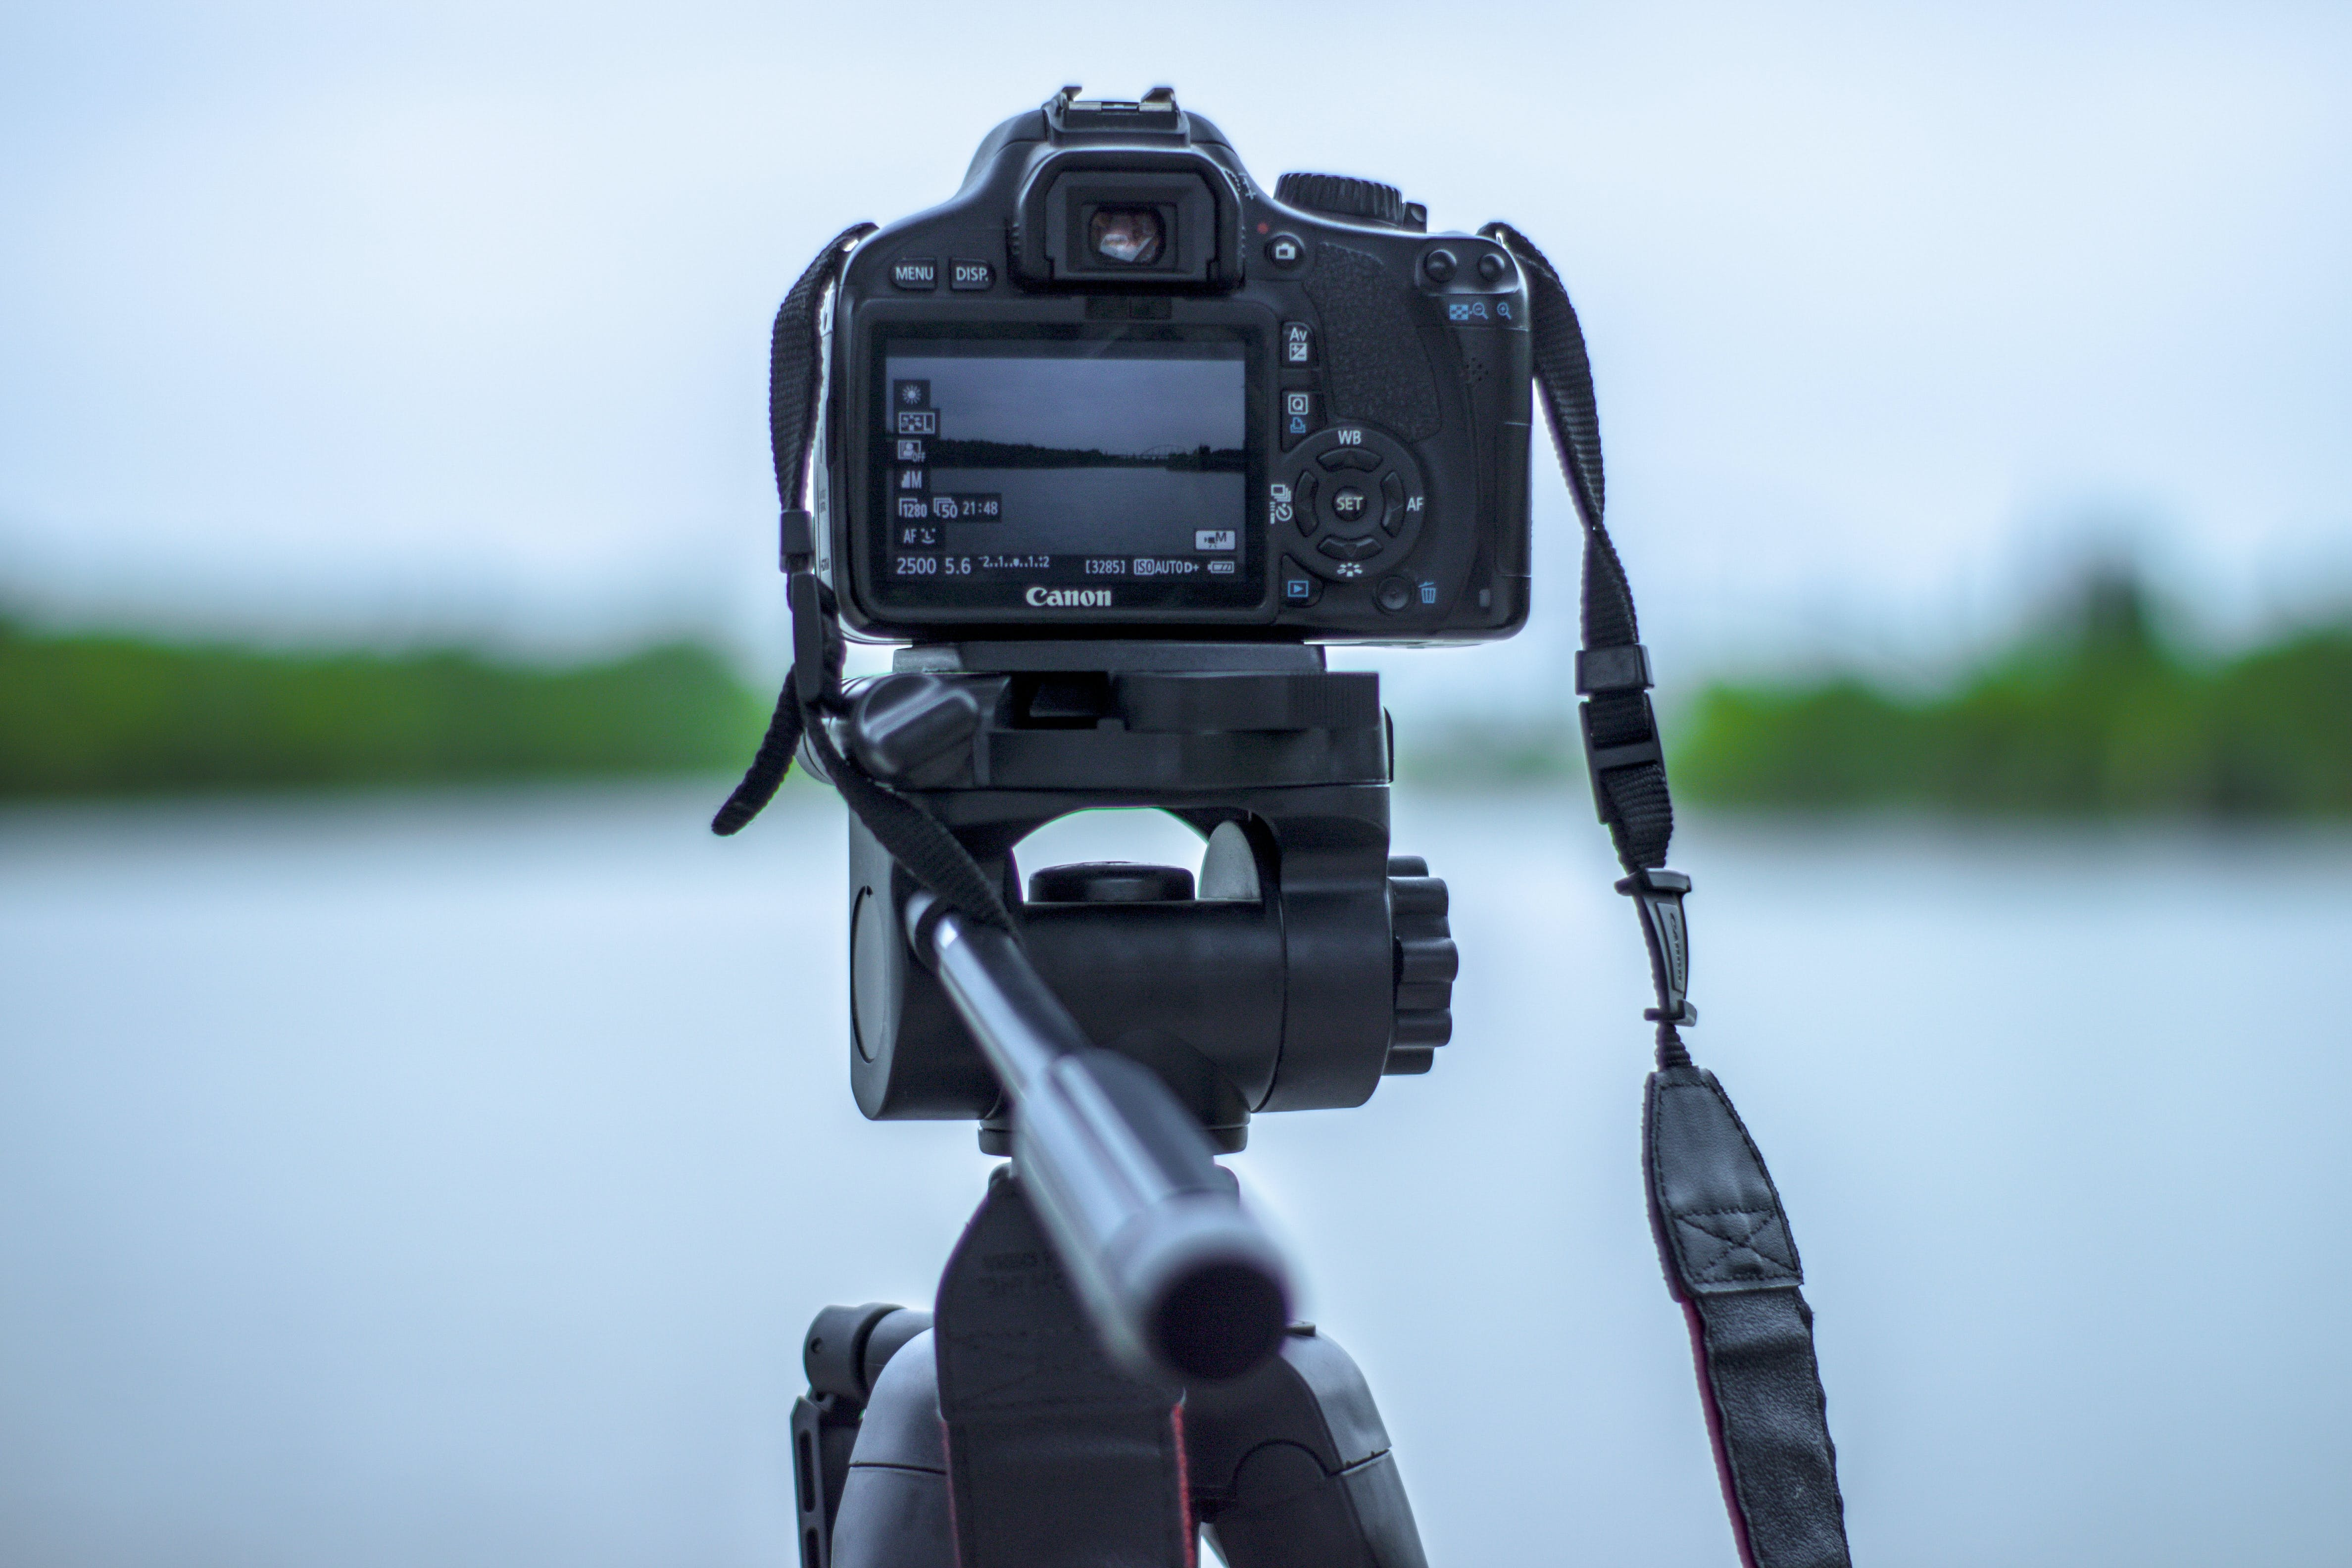 Selective Focus Photo of Black Canon Camera on Tripod Stand in Front of Body of Water Photo